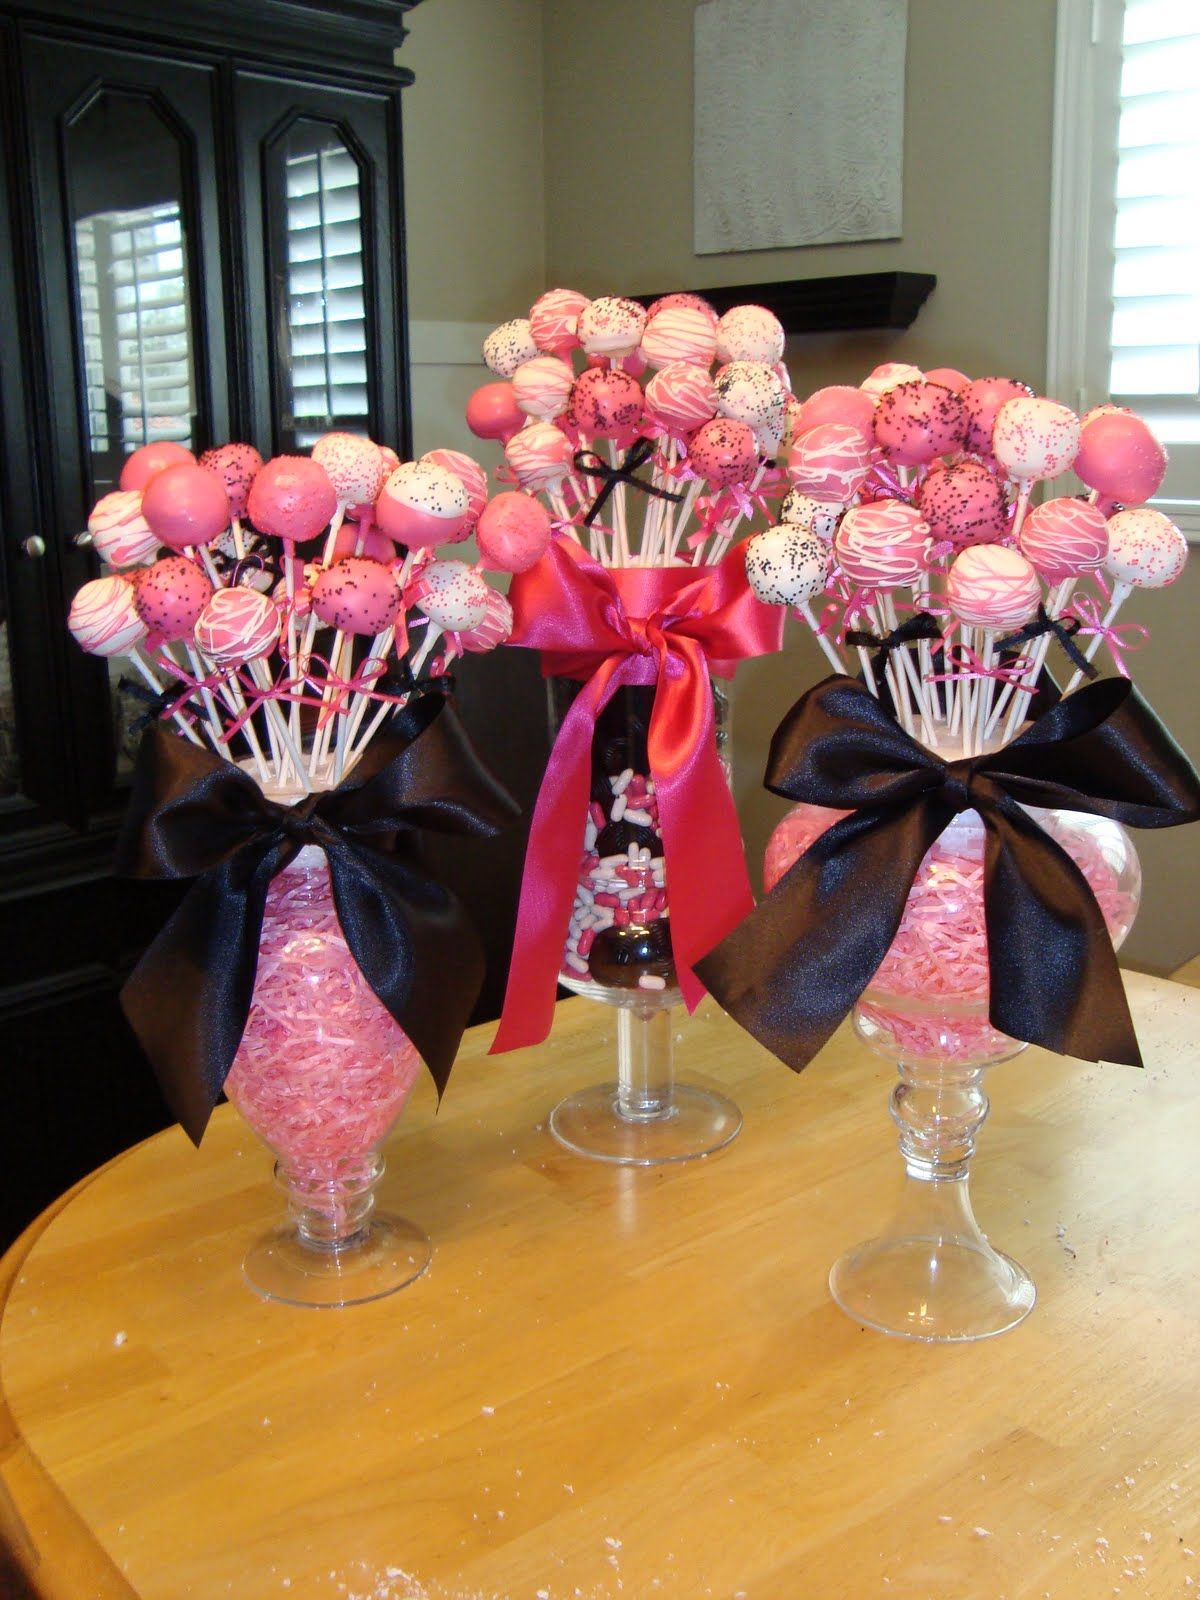 Cake Pop Christmas Decorating Ideas : Cake pops (or Lollipops) in jars are stuck in styrofoam ...